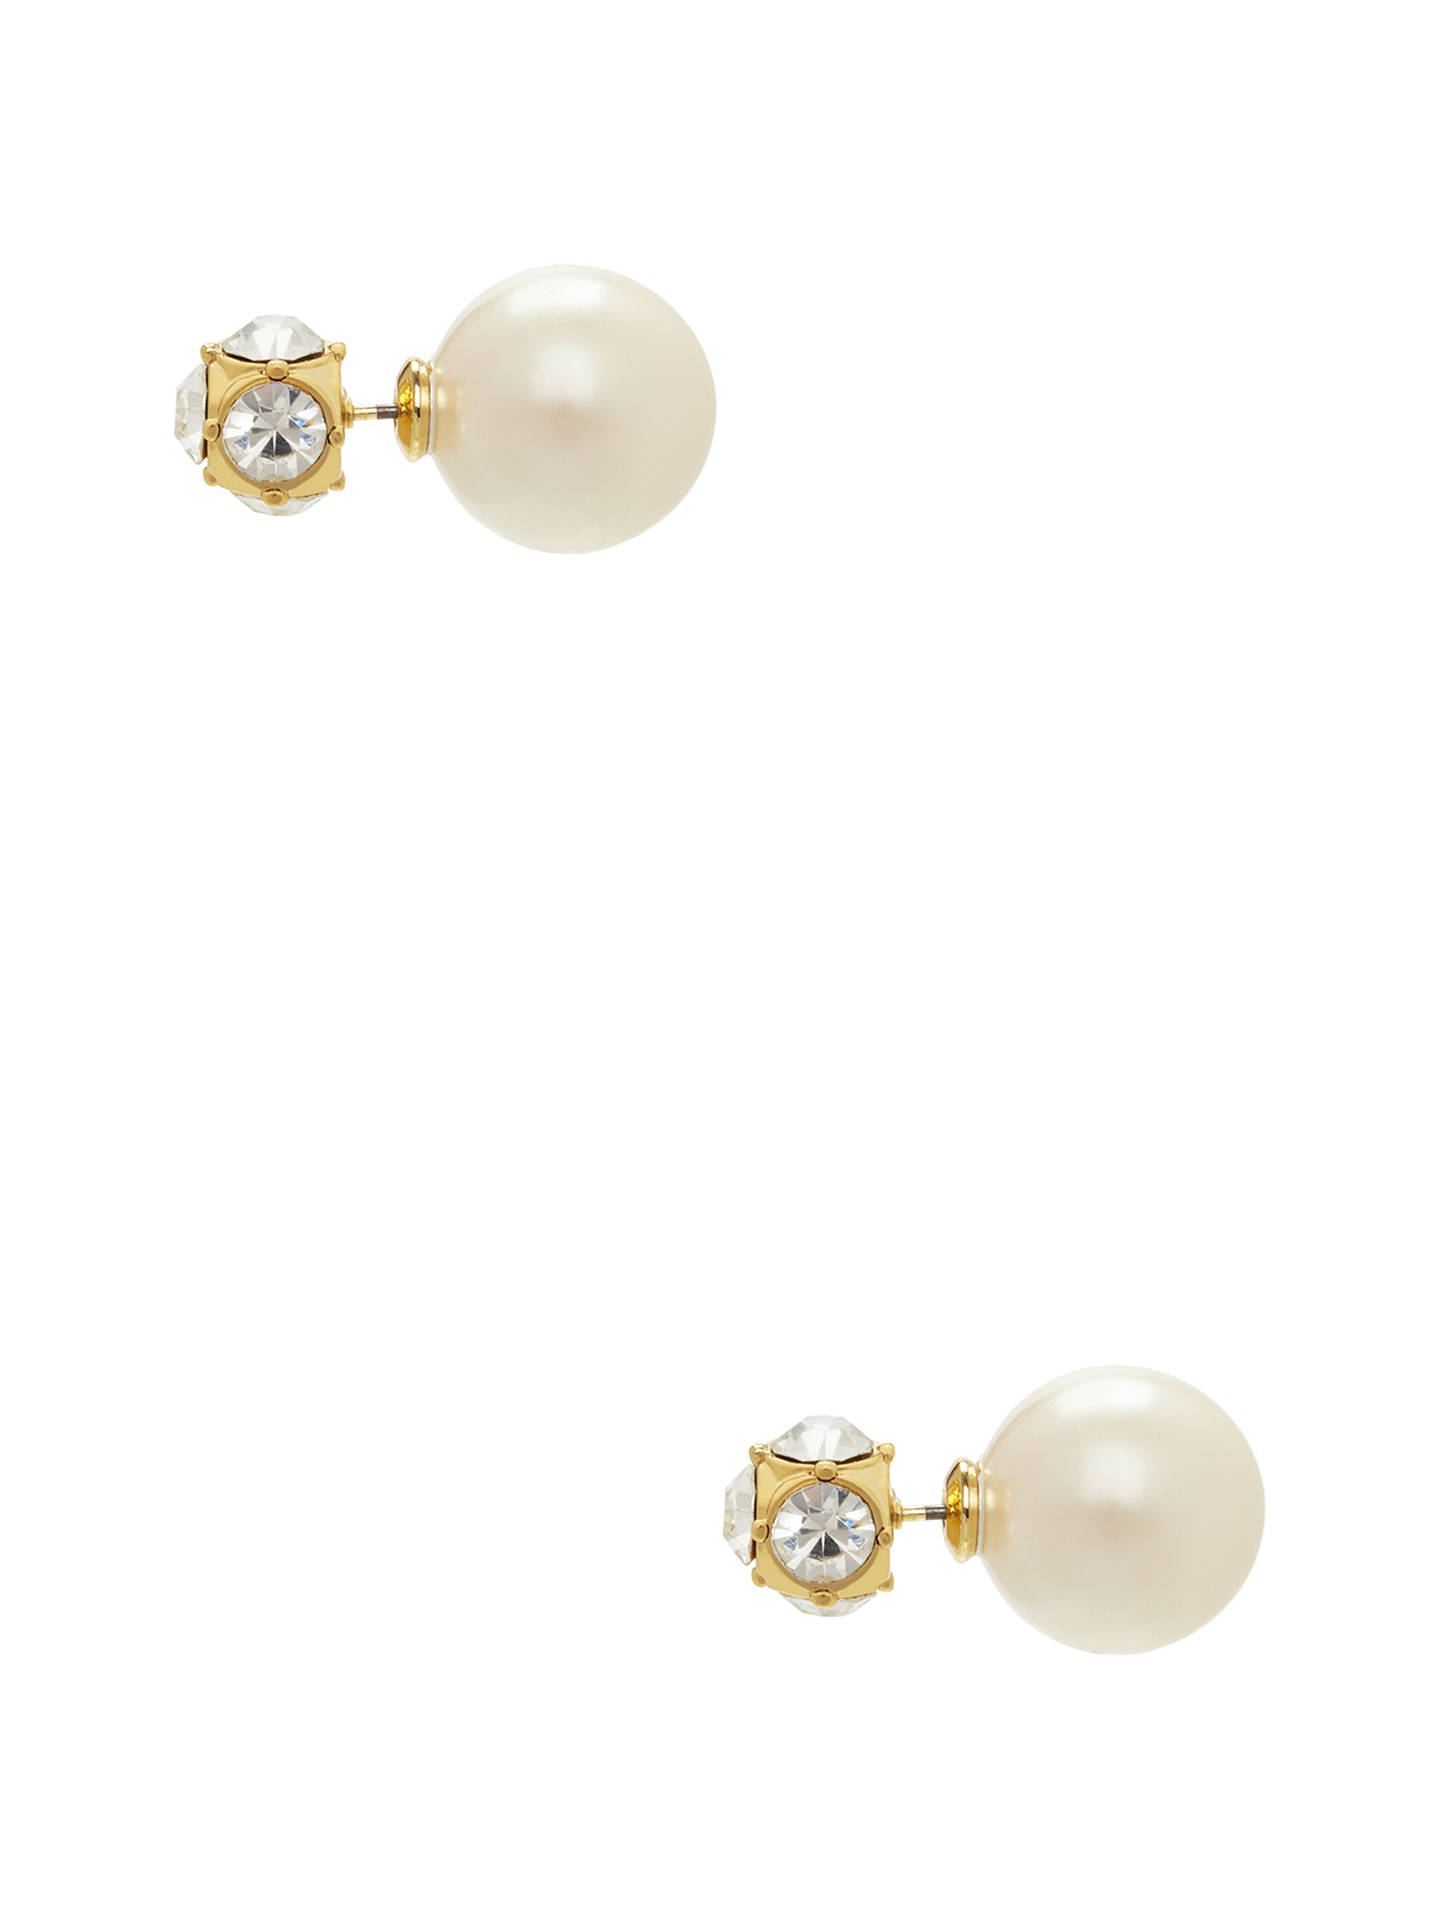 Buykate spade new york Glass Stone and Faux Pearl Reversible Stud Earrings, Gold/White Online at johnlewis.com